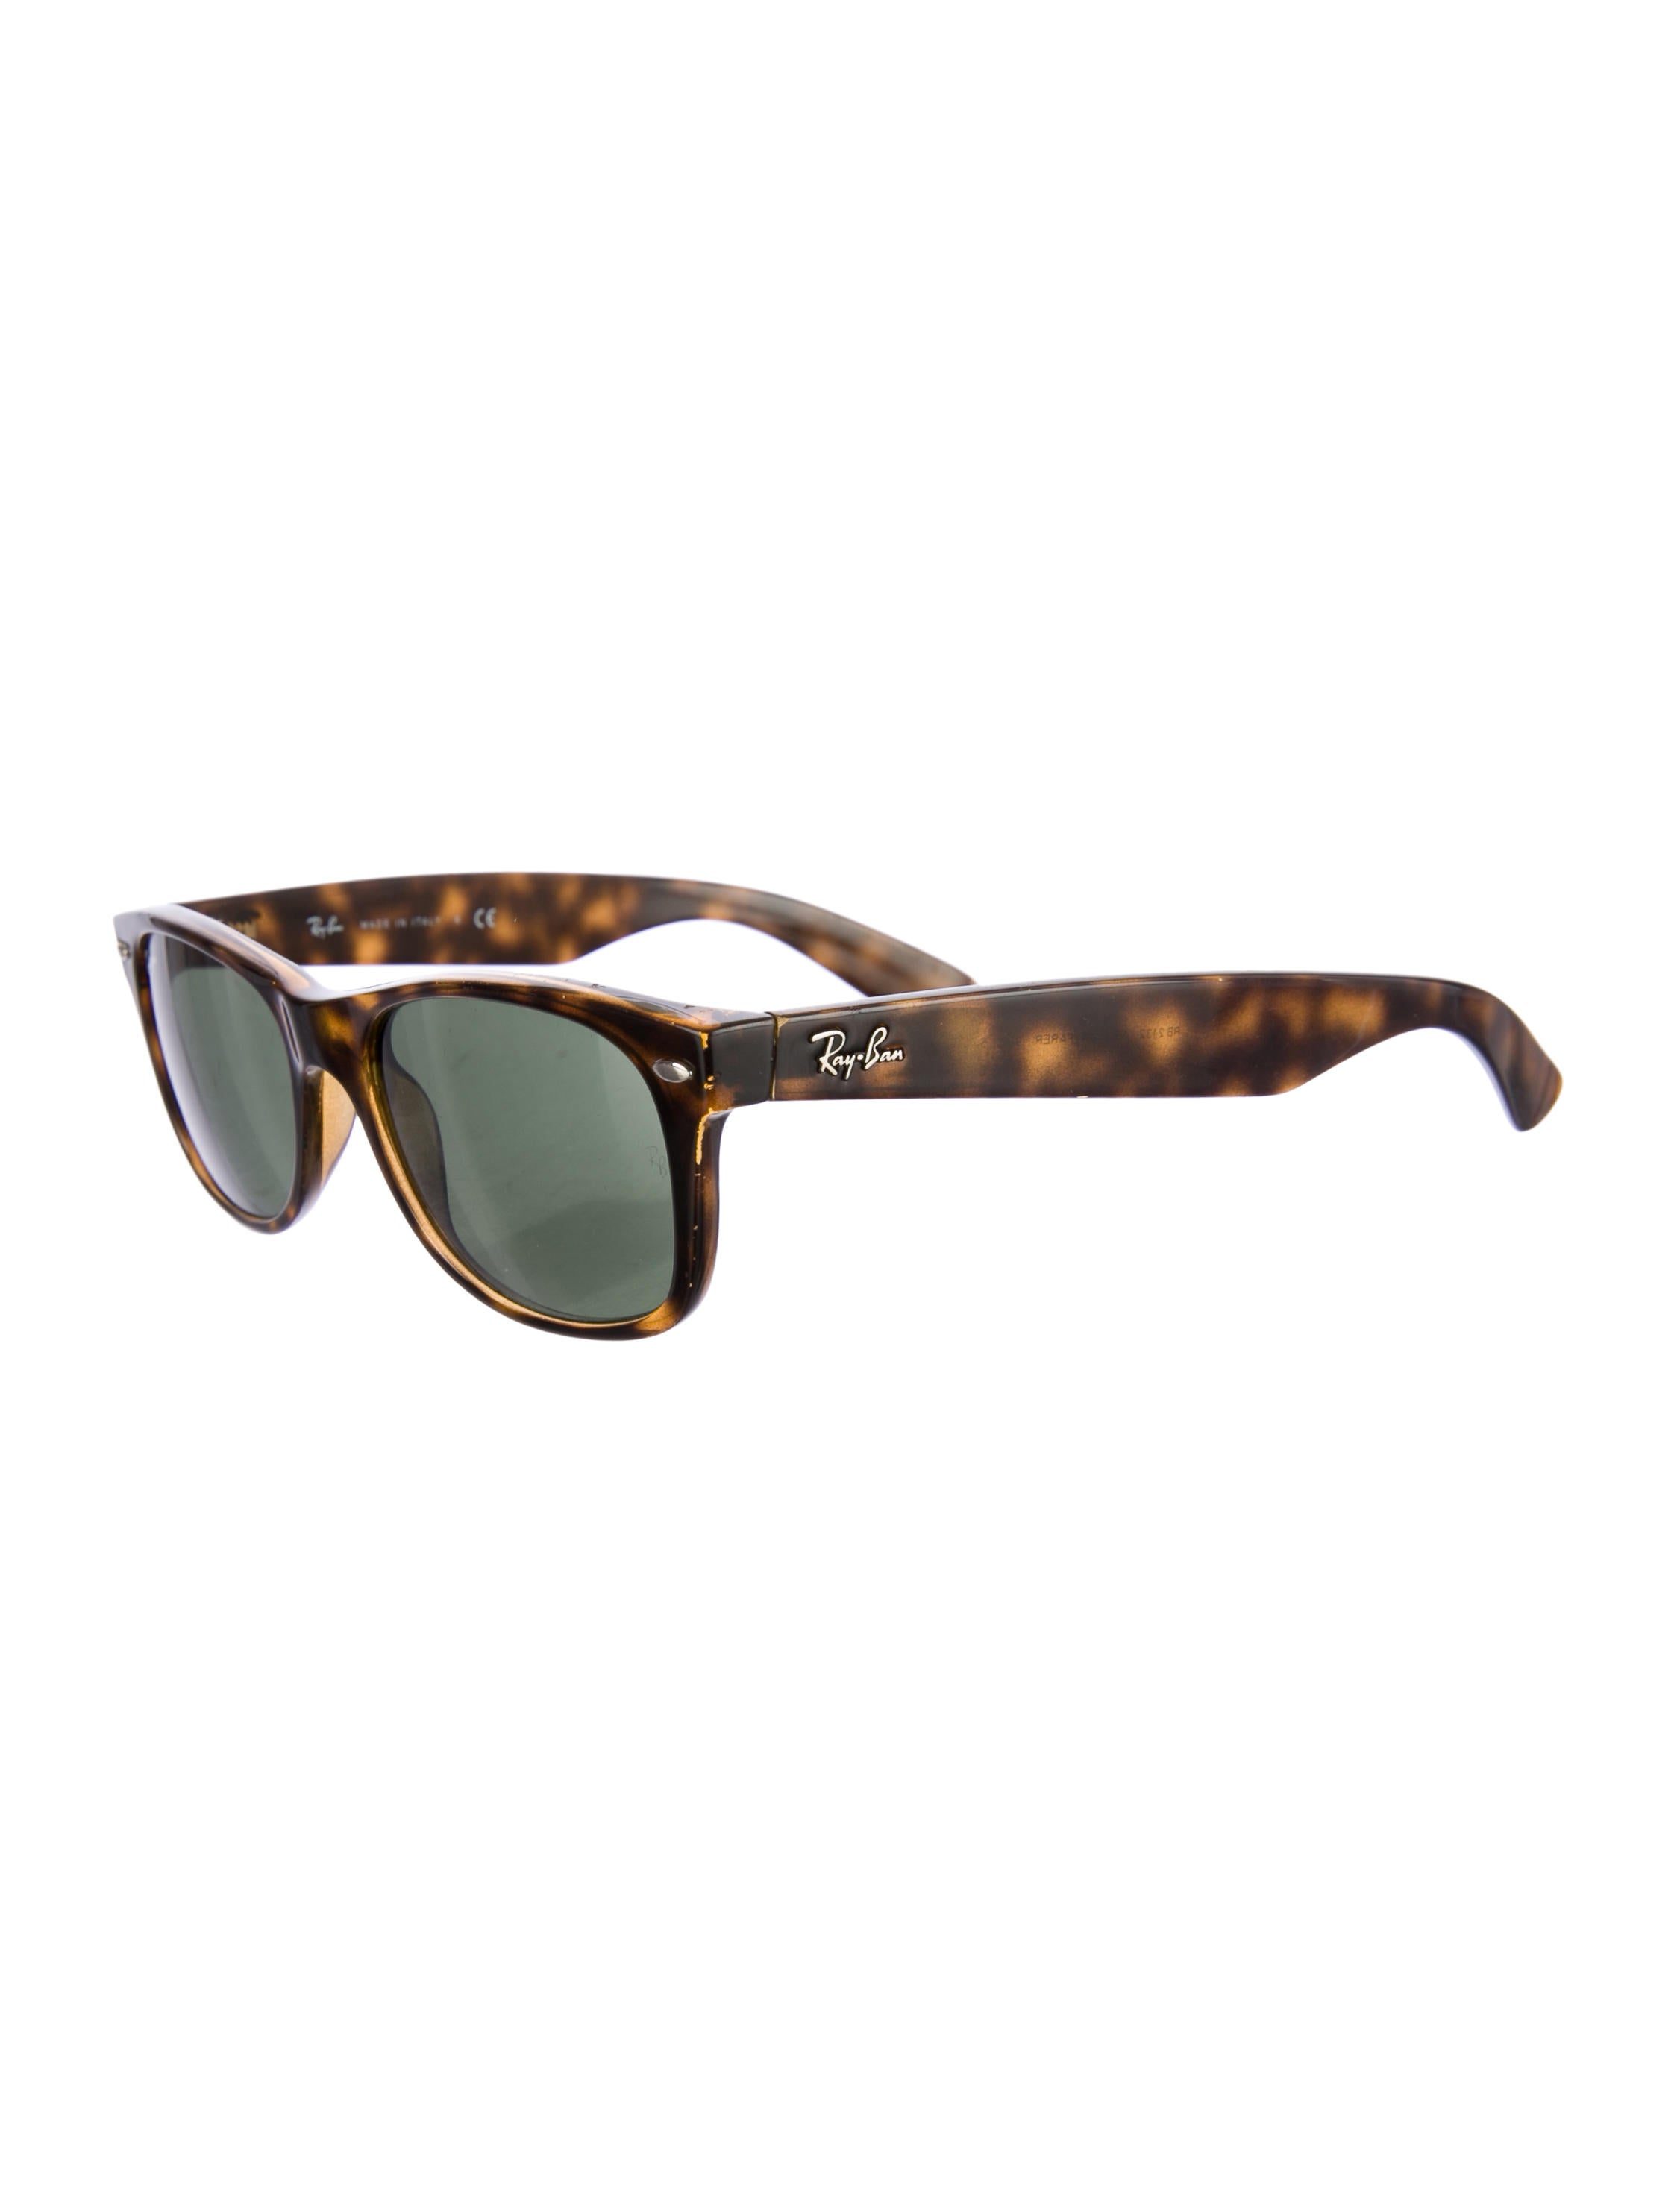 b21f1dbf9f40 Cost Less Ray Ban Sunglasses In India Below 500